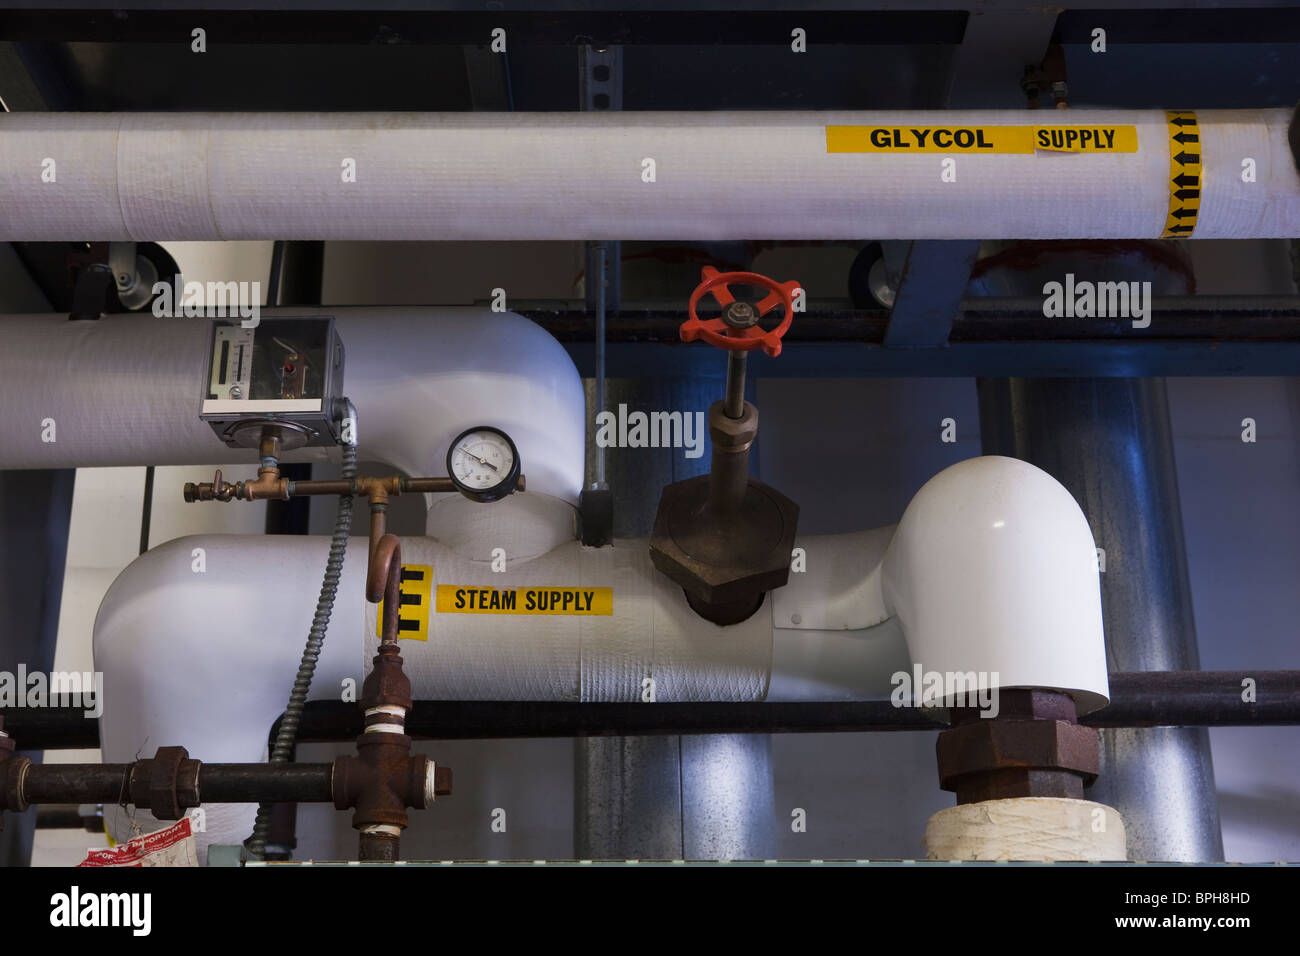 Glycol and steam supply pipelines in a brewery - Stock Image